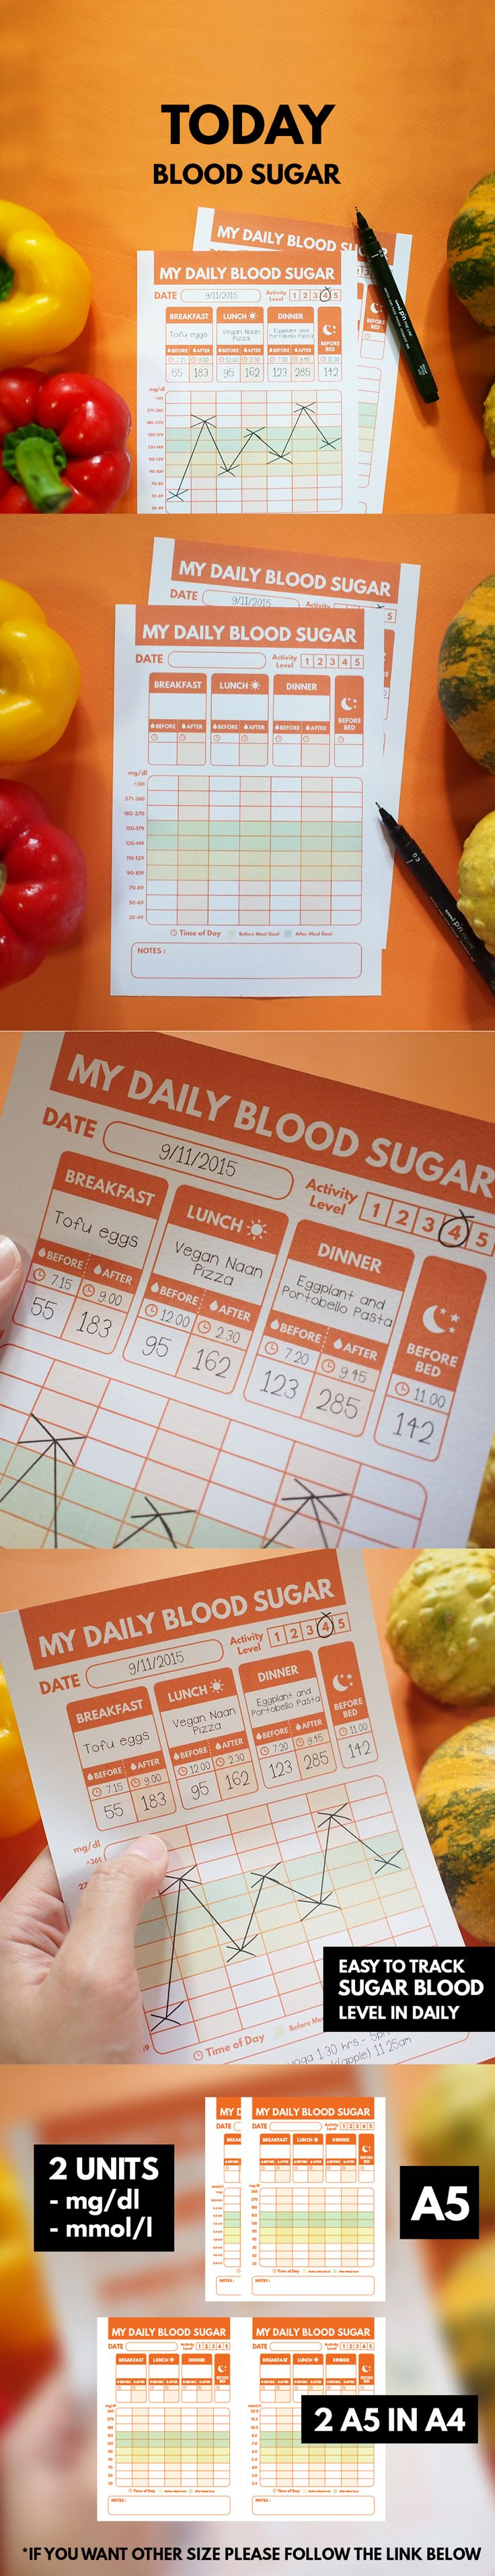 A Healthy Daily Routine for Diabetes